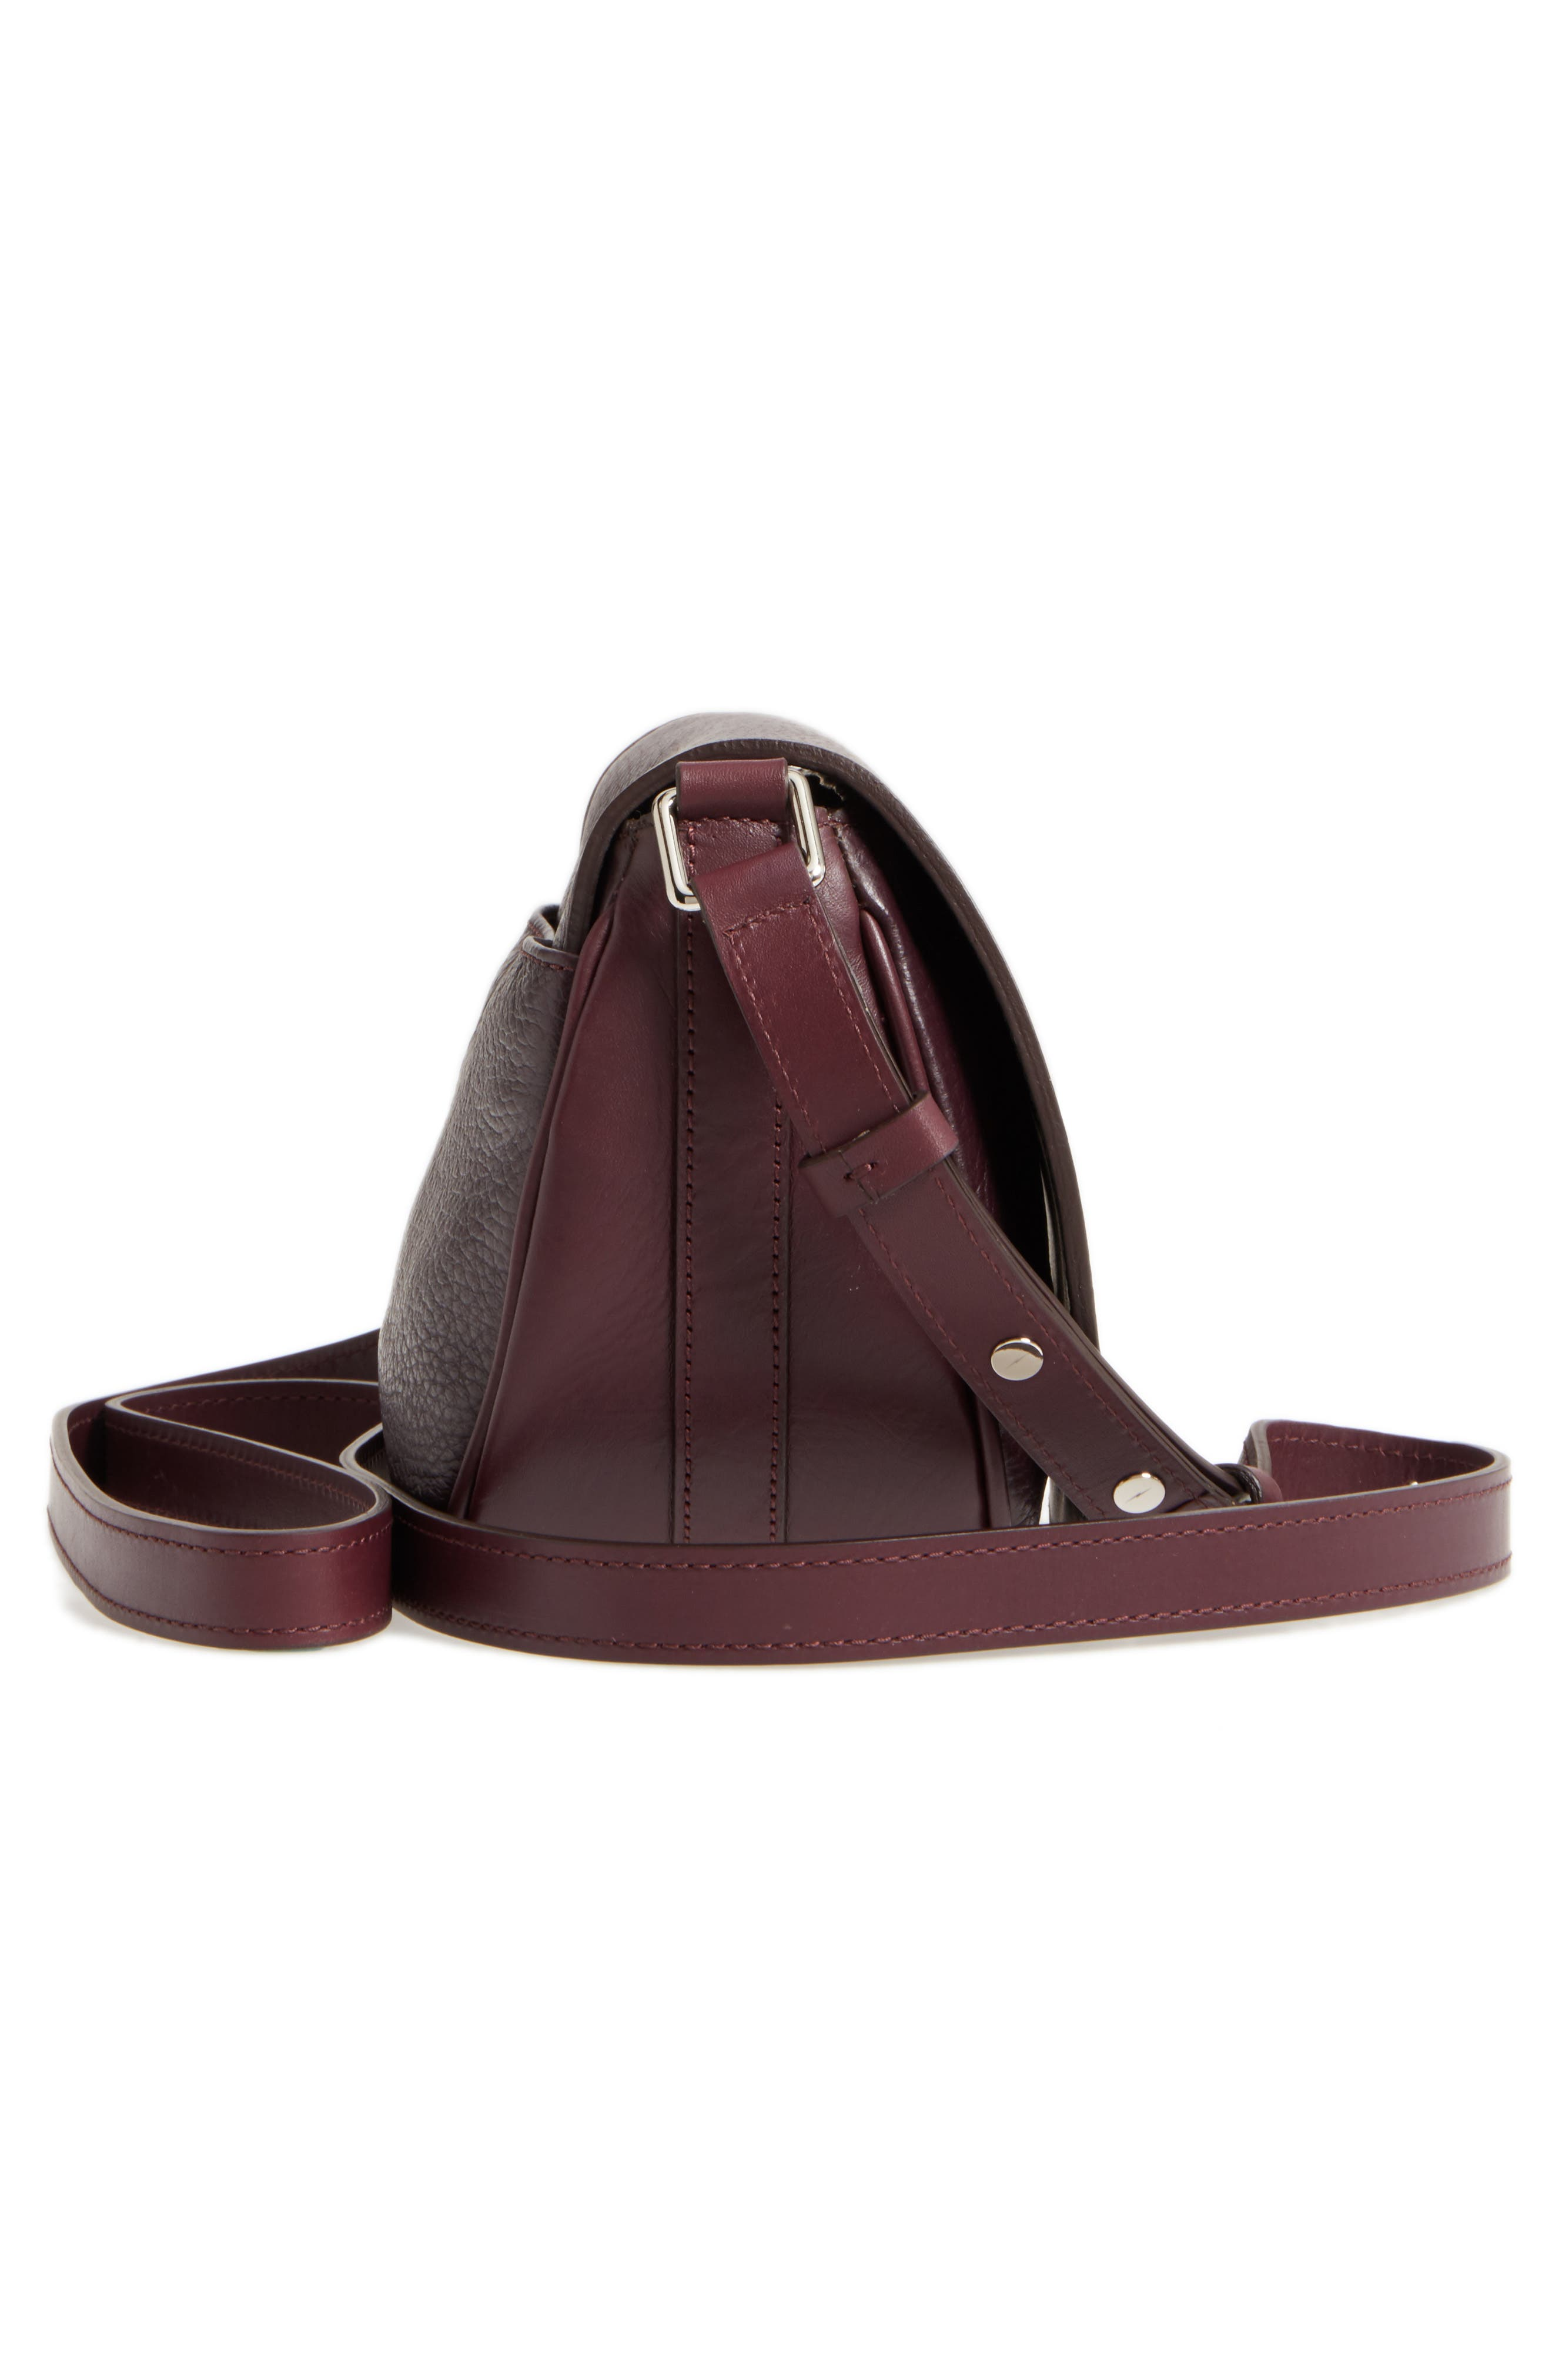 Calfskin Leather Shoulder Bag,                             Alternate thumbnail 5, color,                             Aubergine